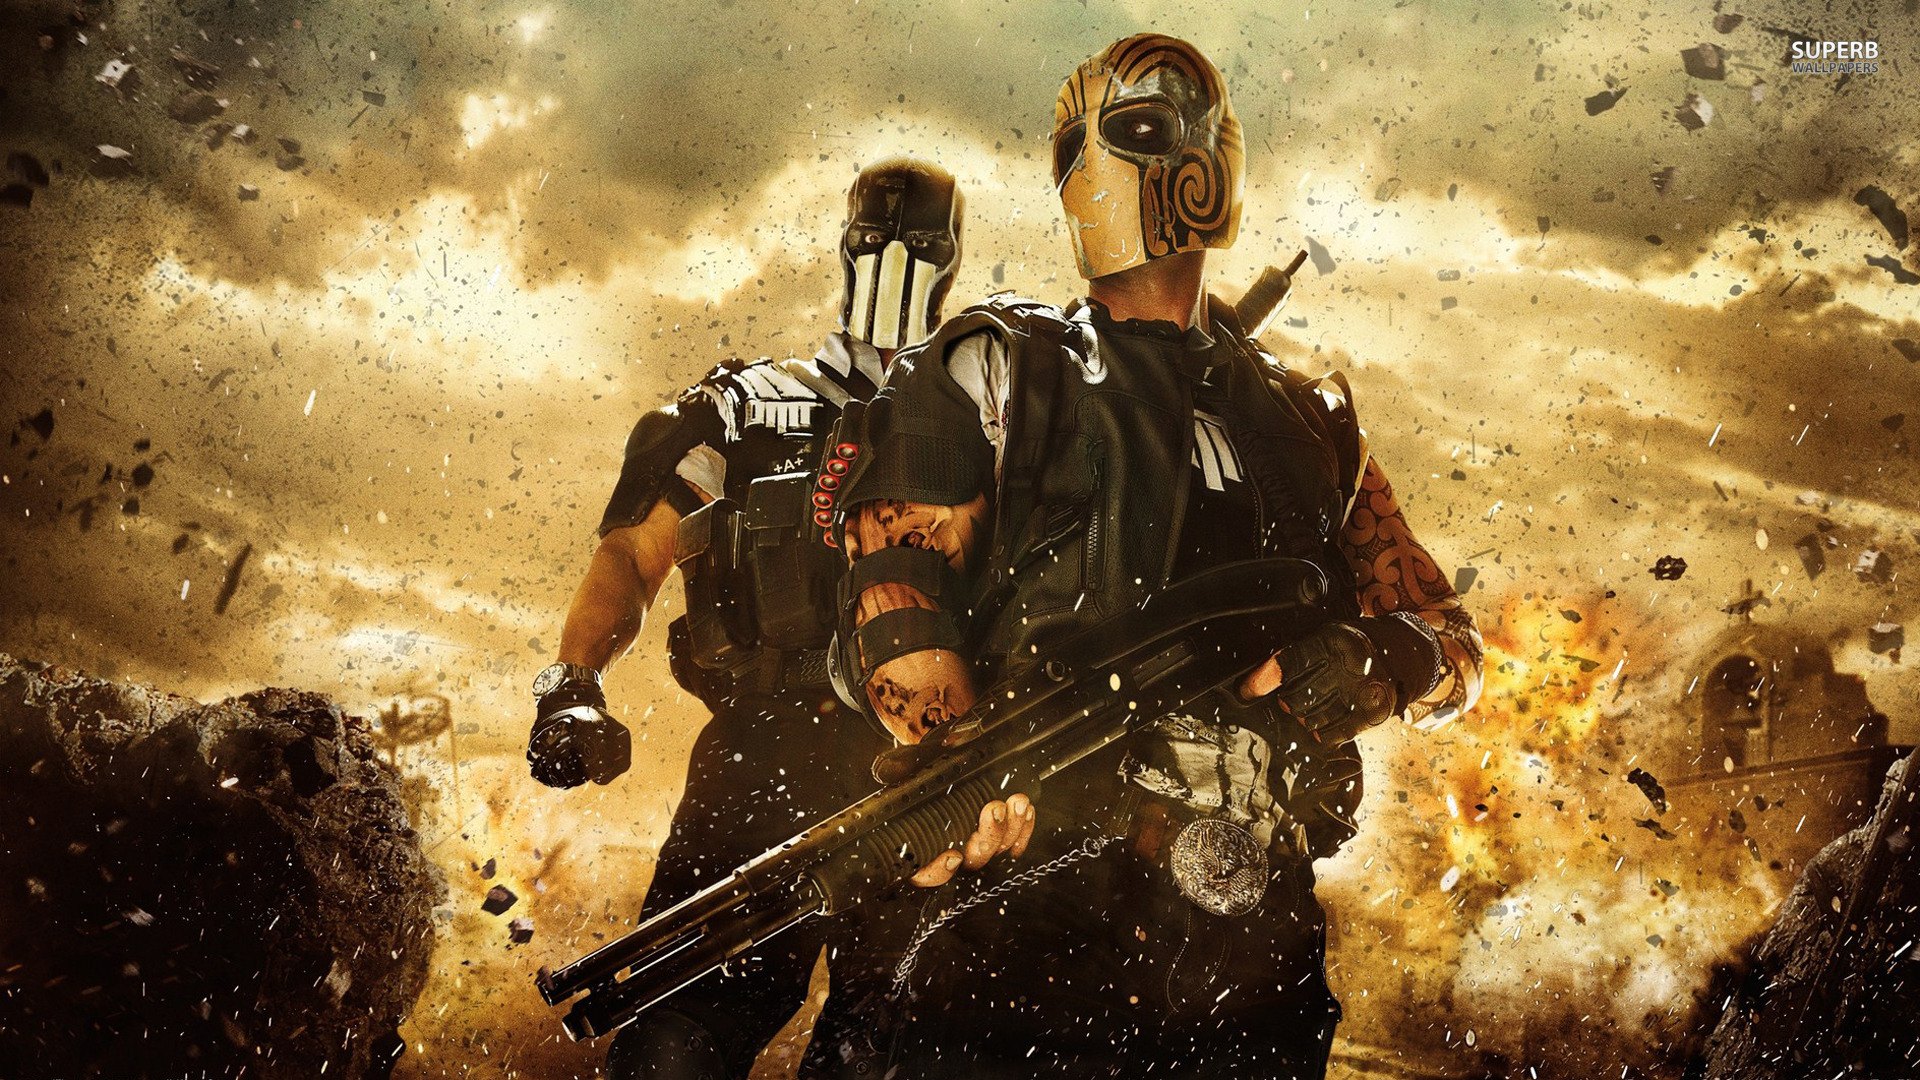 Alpha and Bravo - Army of Two: The Devil's Cartel wallpaper 1920x1080 jpg